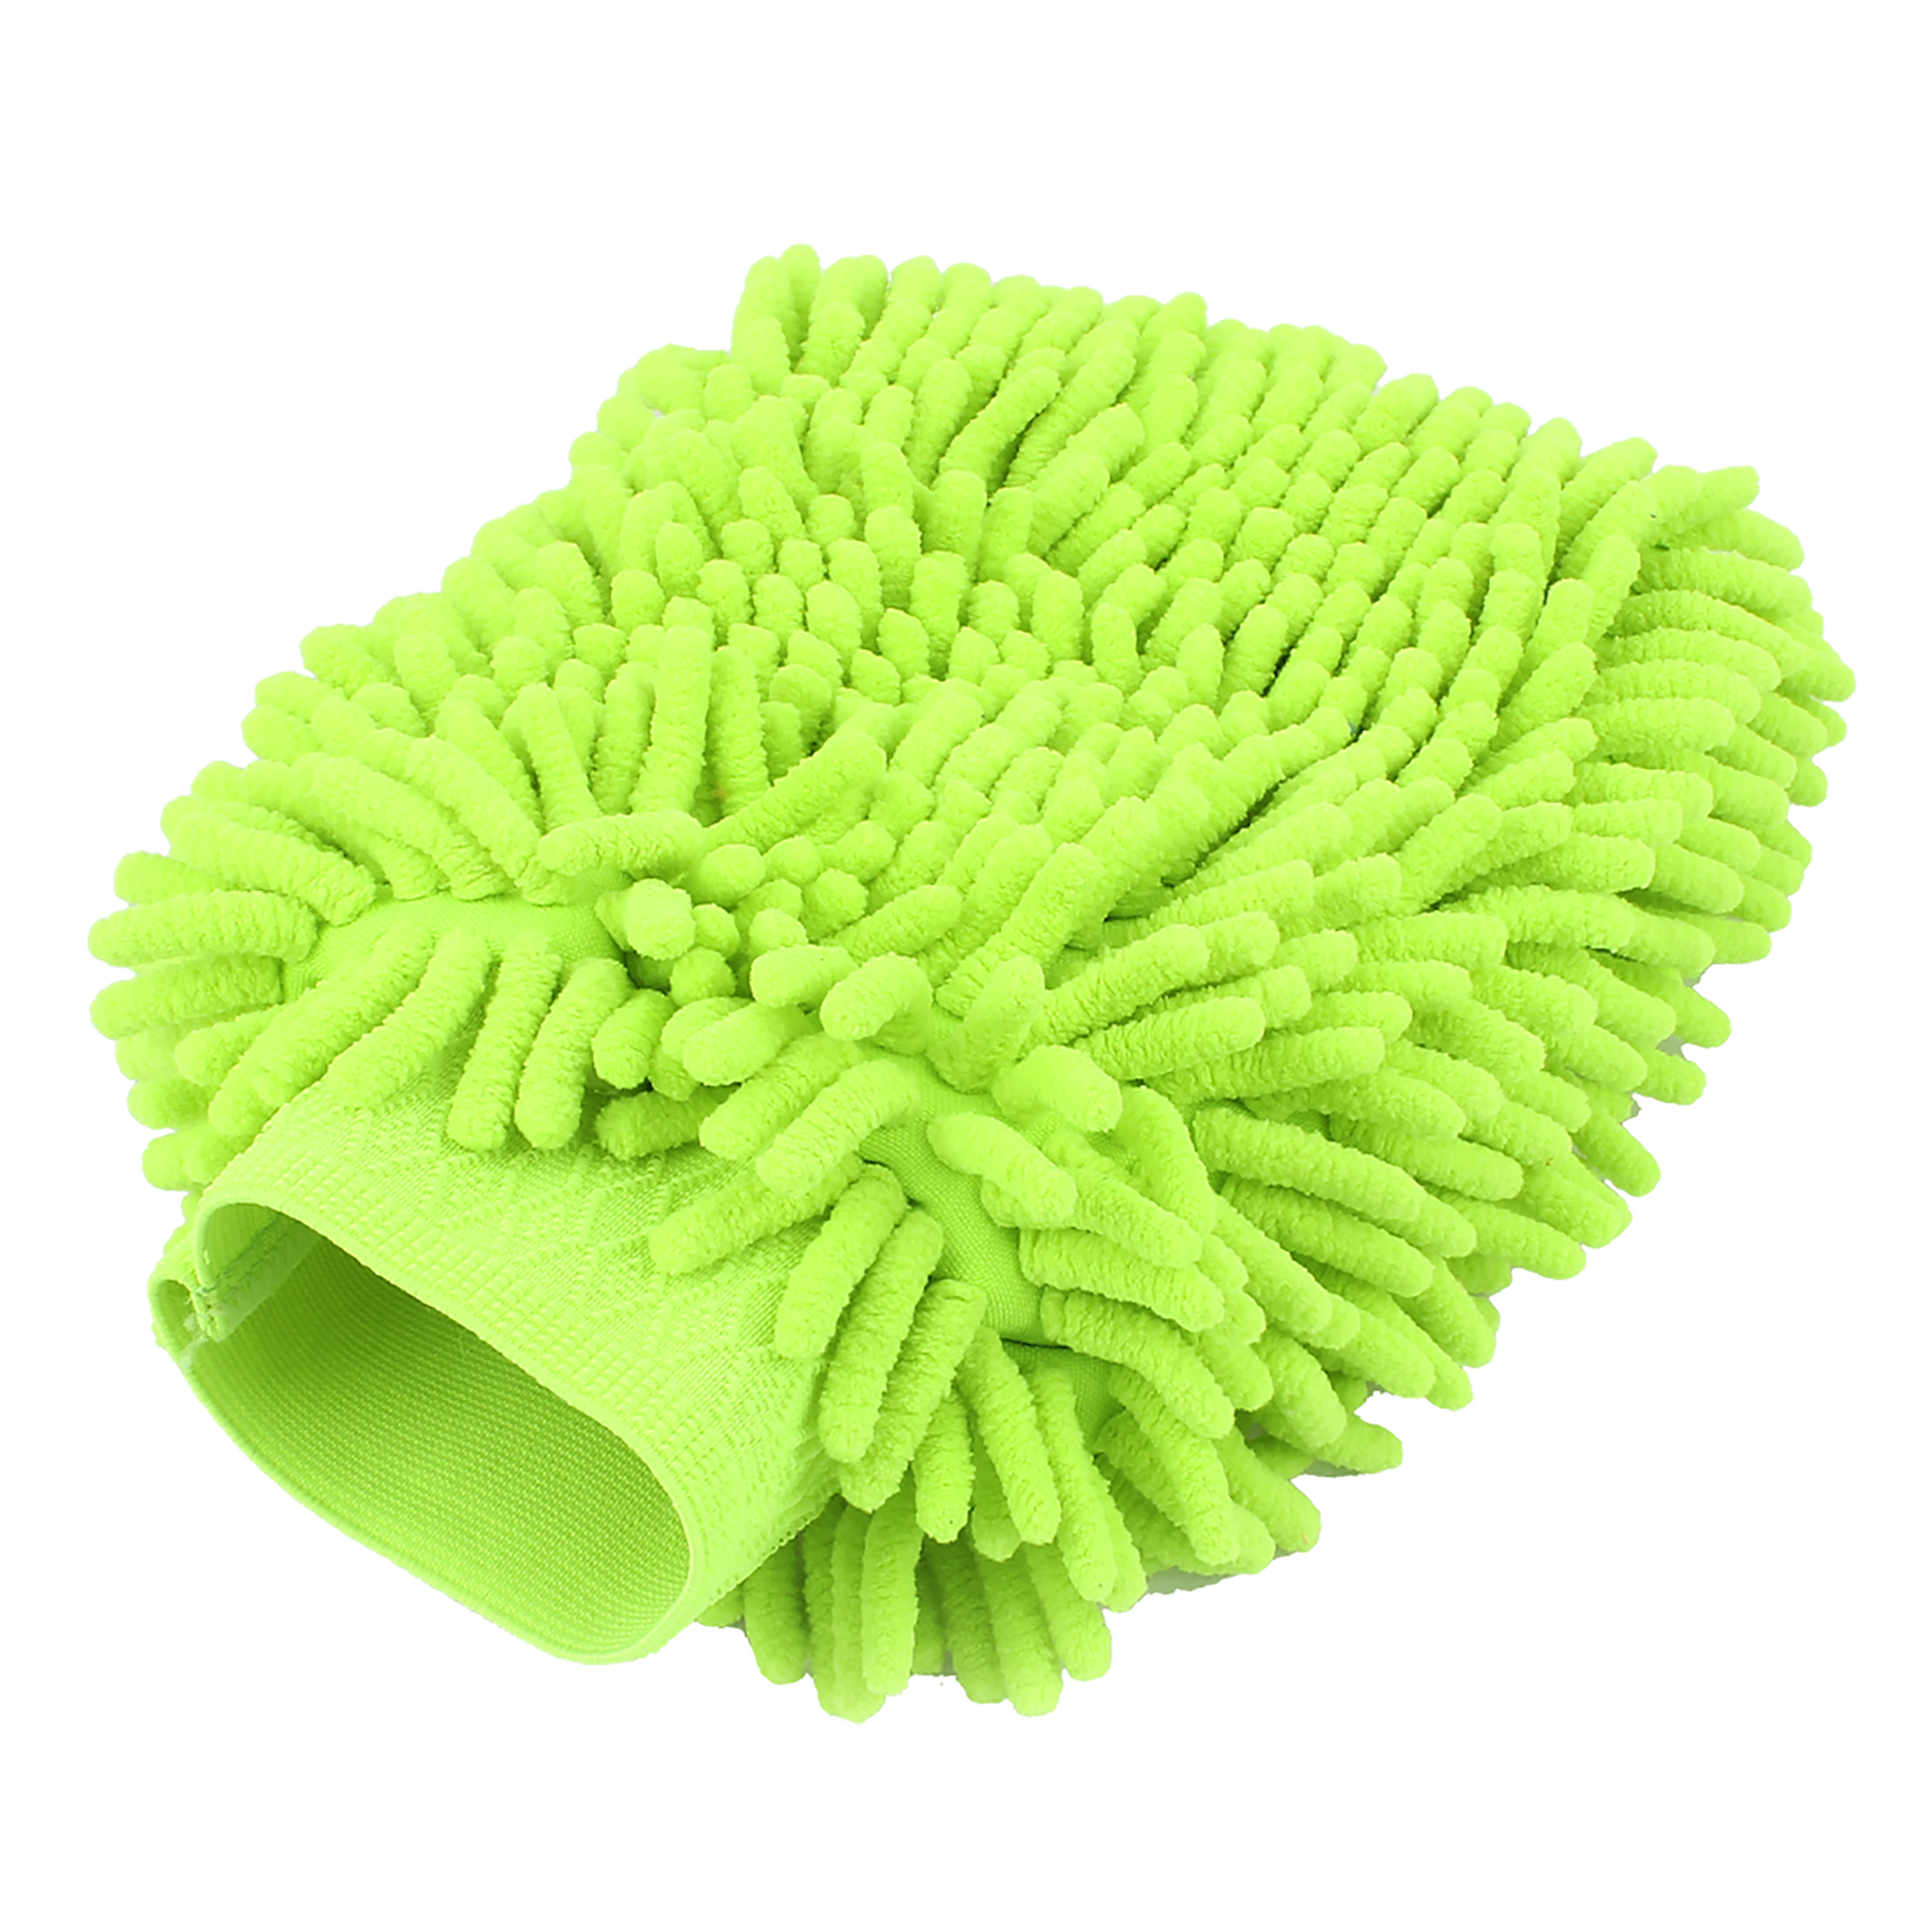 Car Mitt Microfiber Wash Washing Cleaning Glove Anti Scratch Fluorescent Green